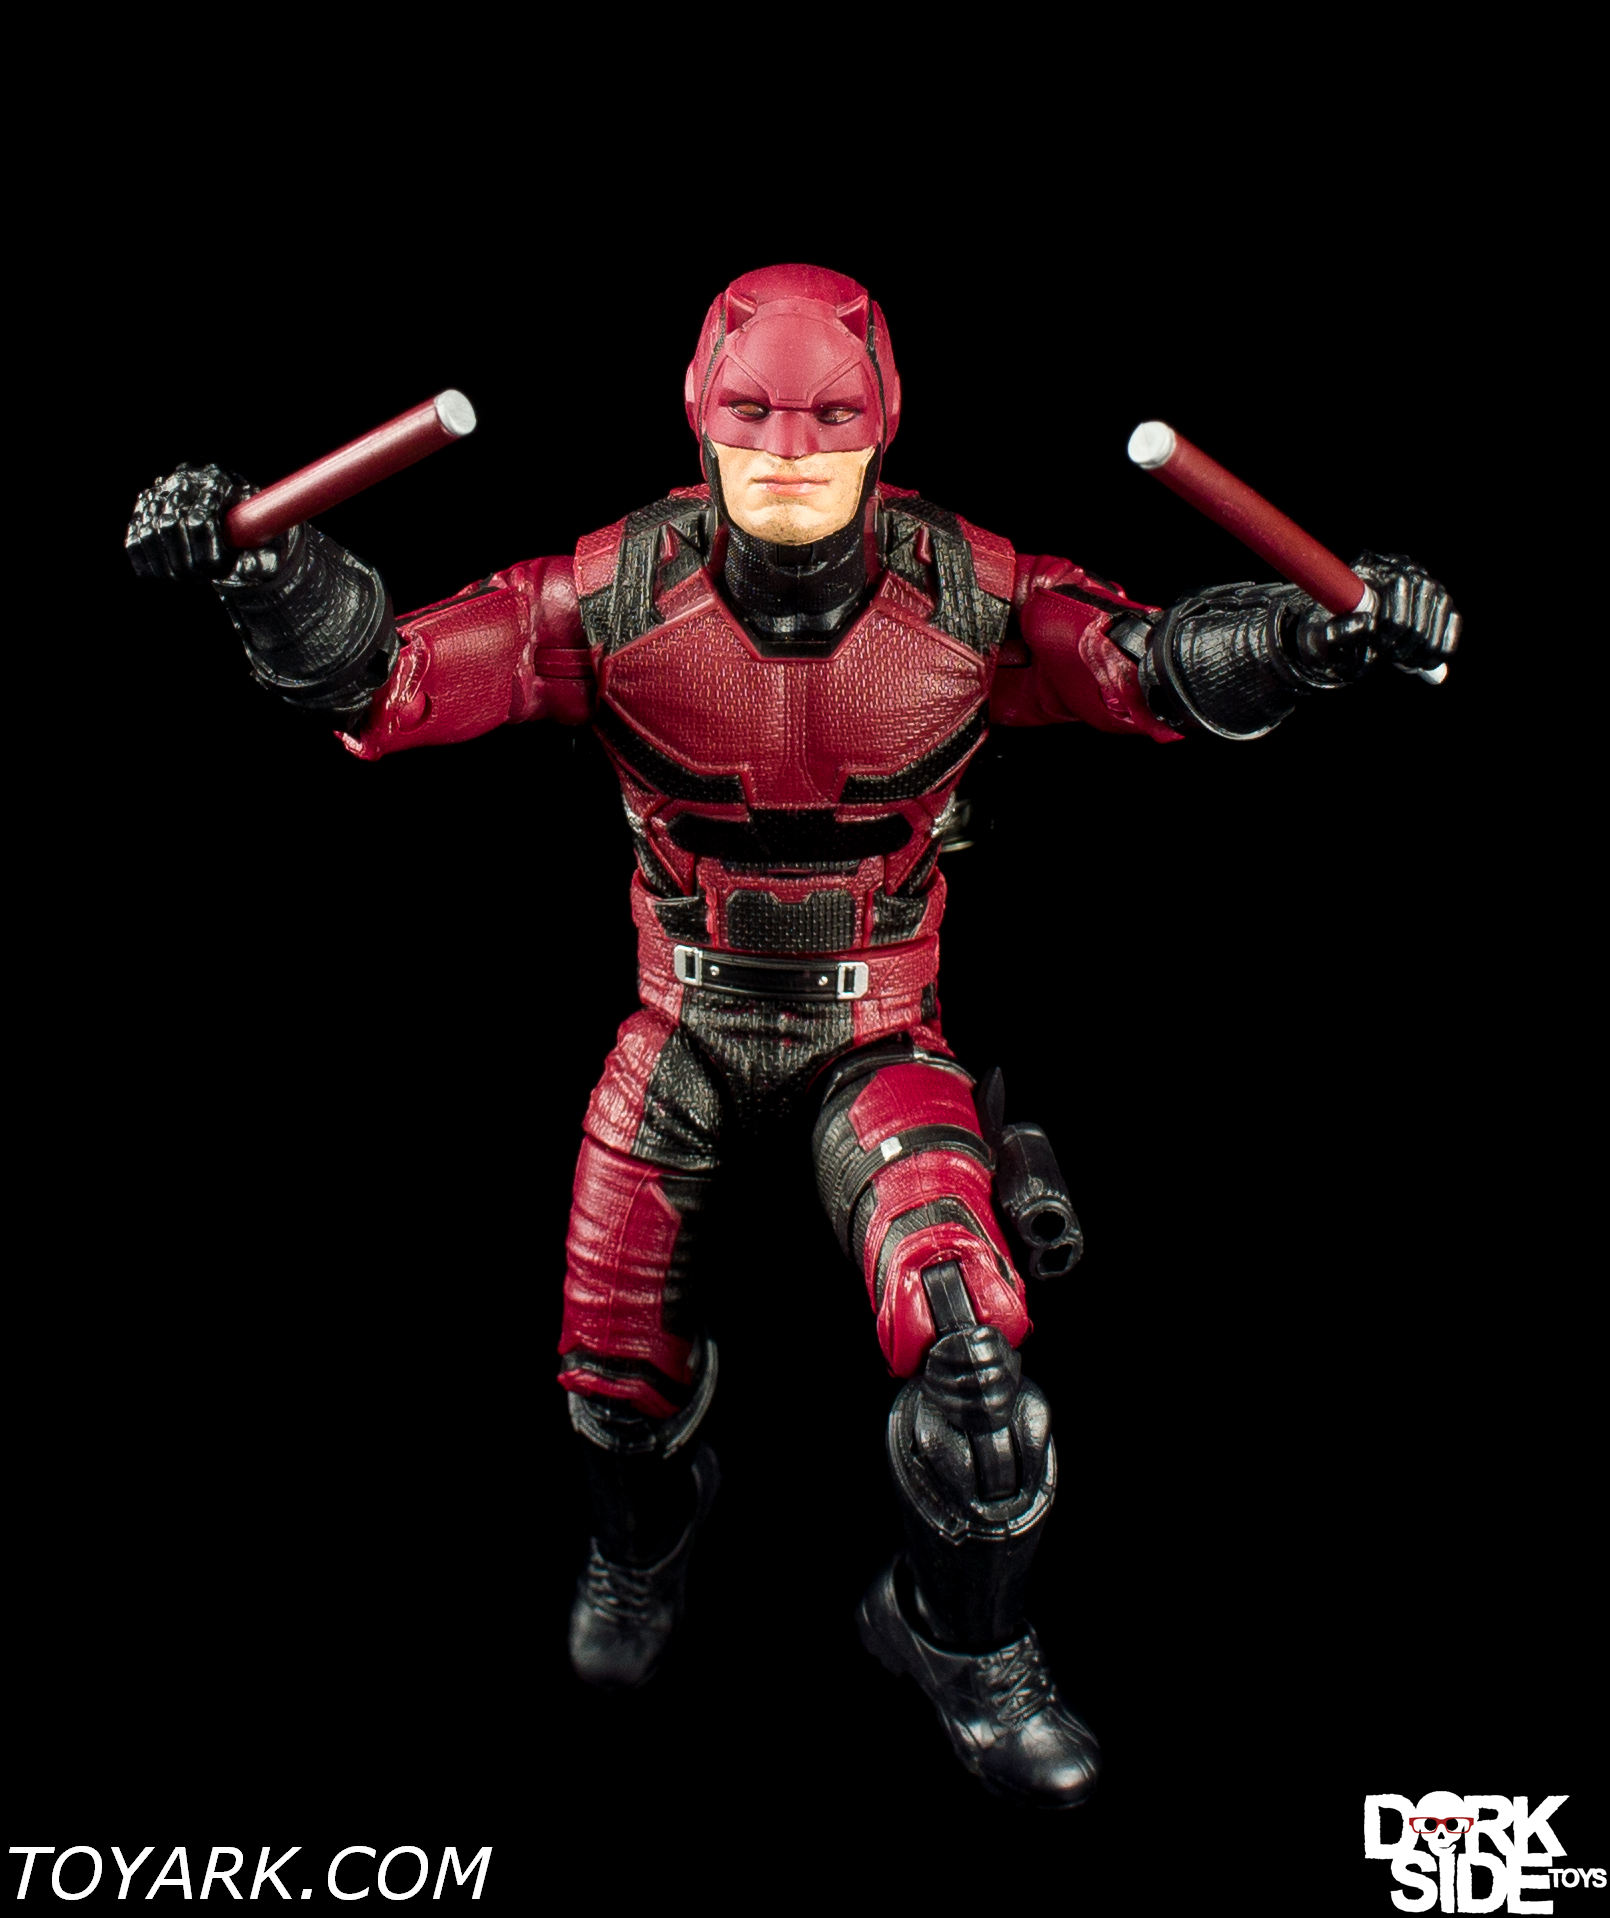 The First Netflix Daredevil Trailer Is Out: Marvel Legends Netflix Daredevil Photo Shoot